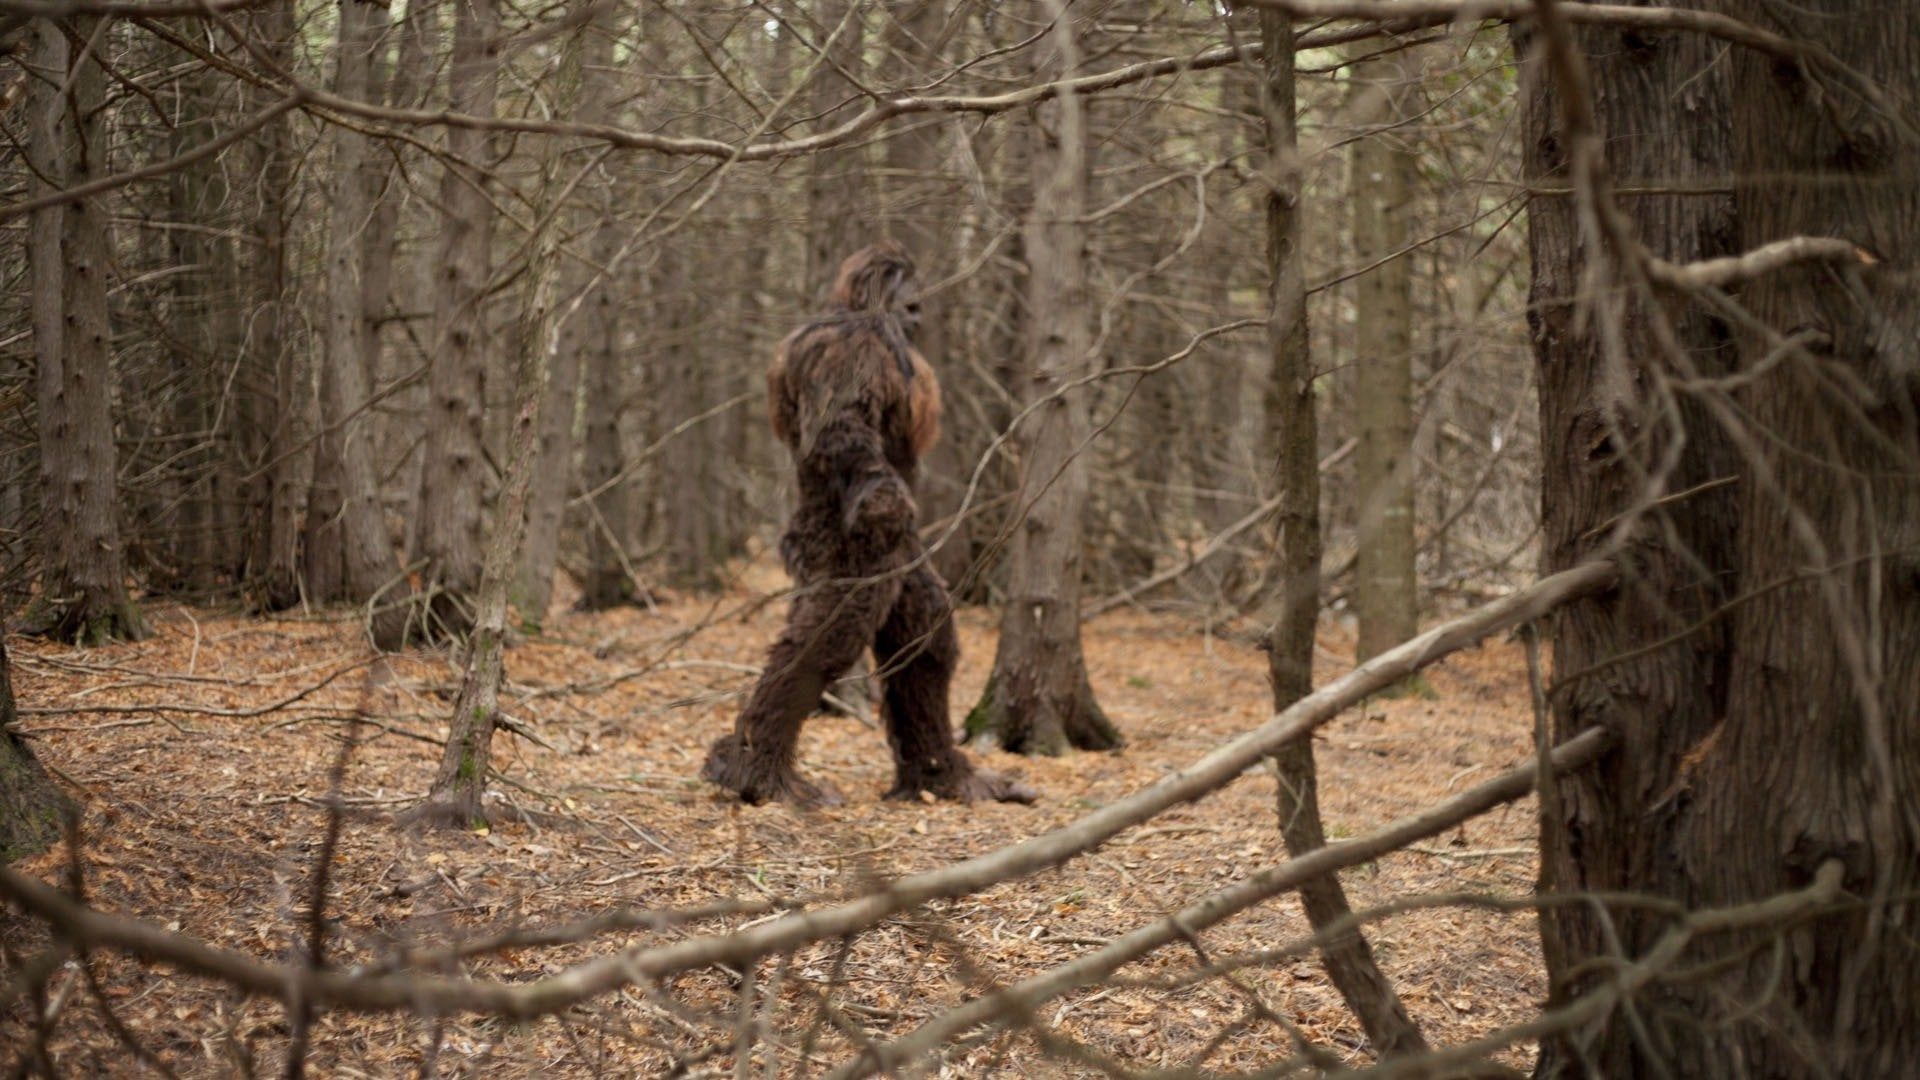 Bigfoot: The Definitive Guide